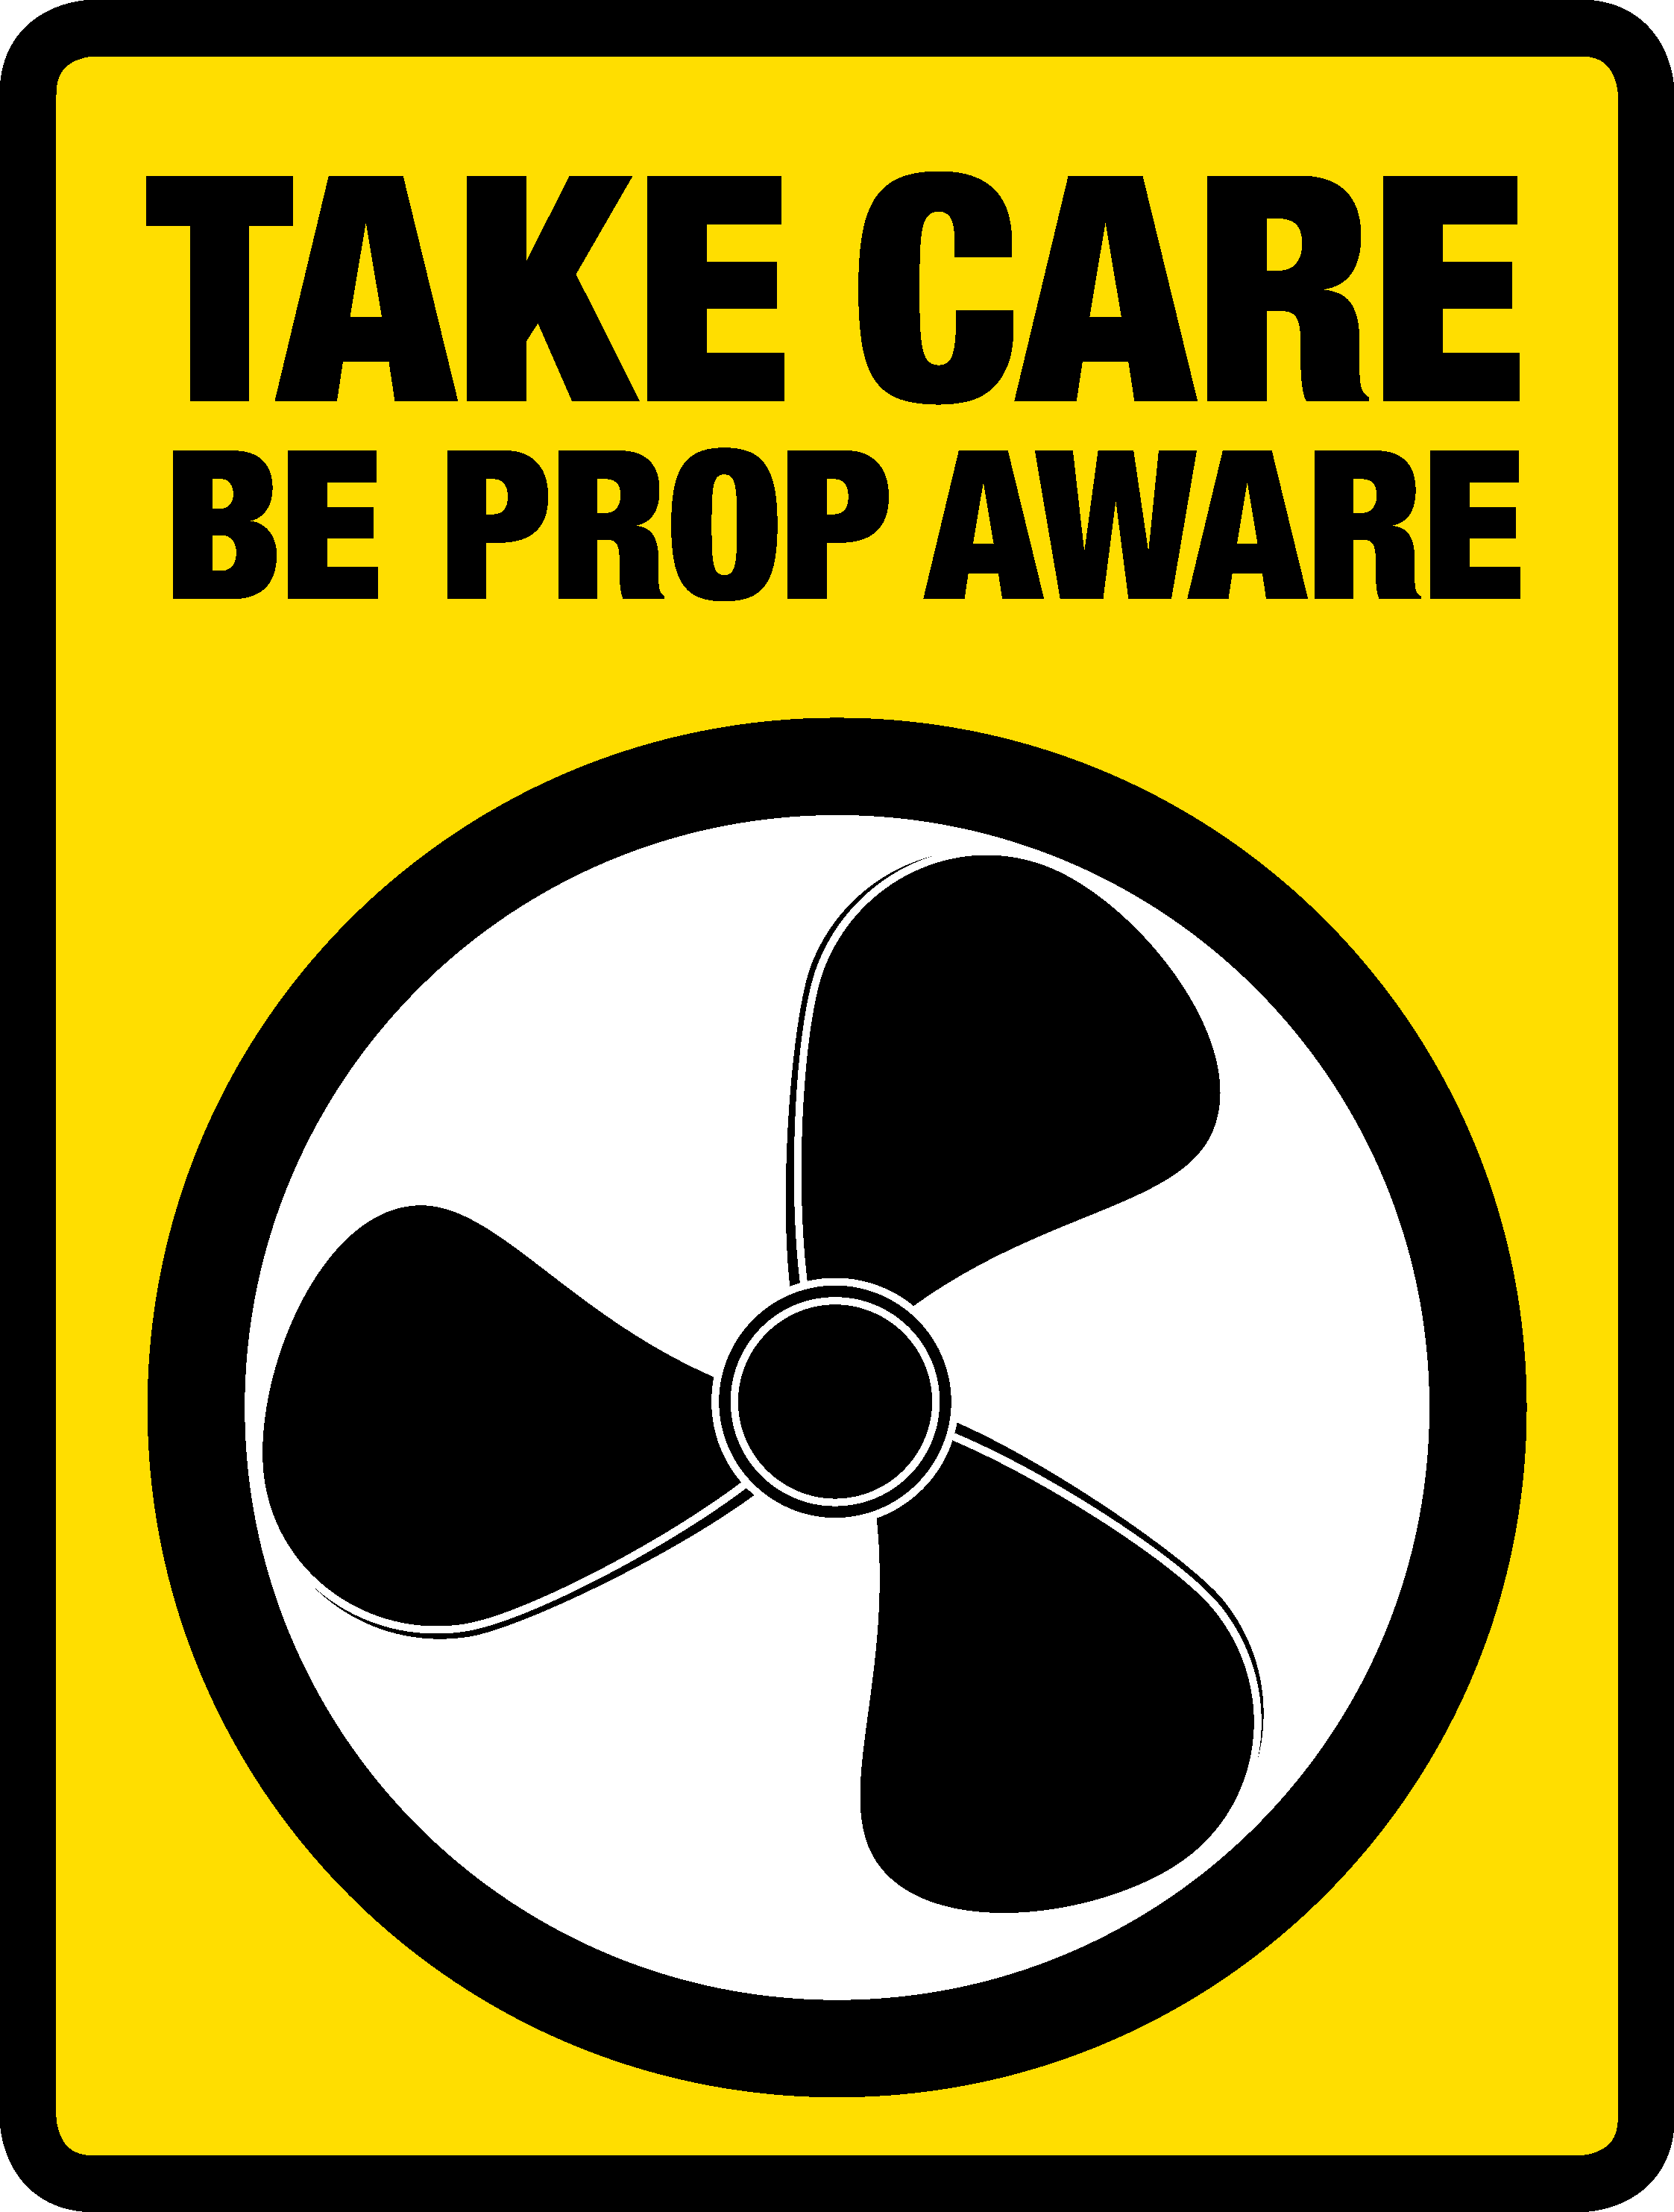 Take Care Be Prop Aware Safety Campaigns Safety